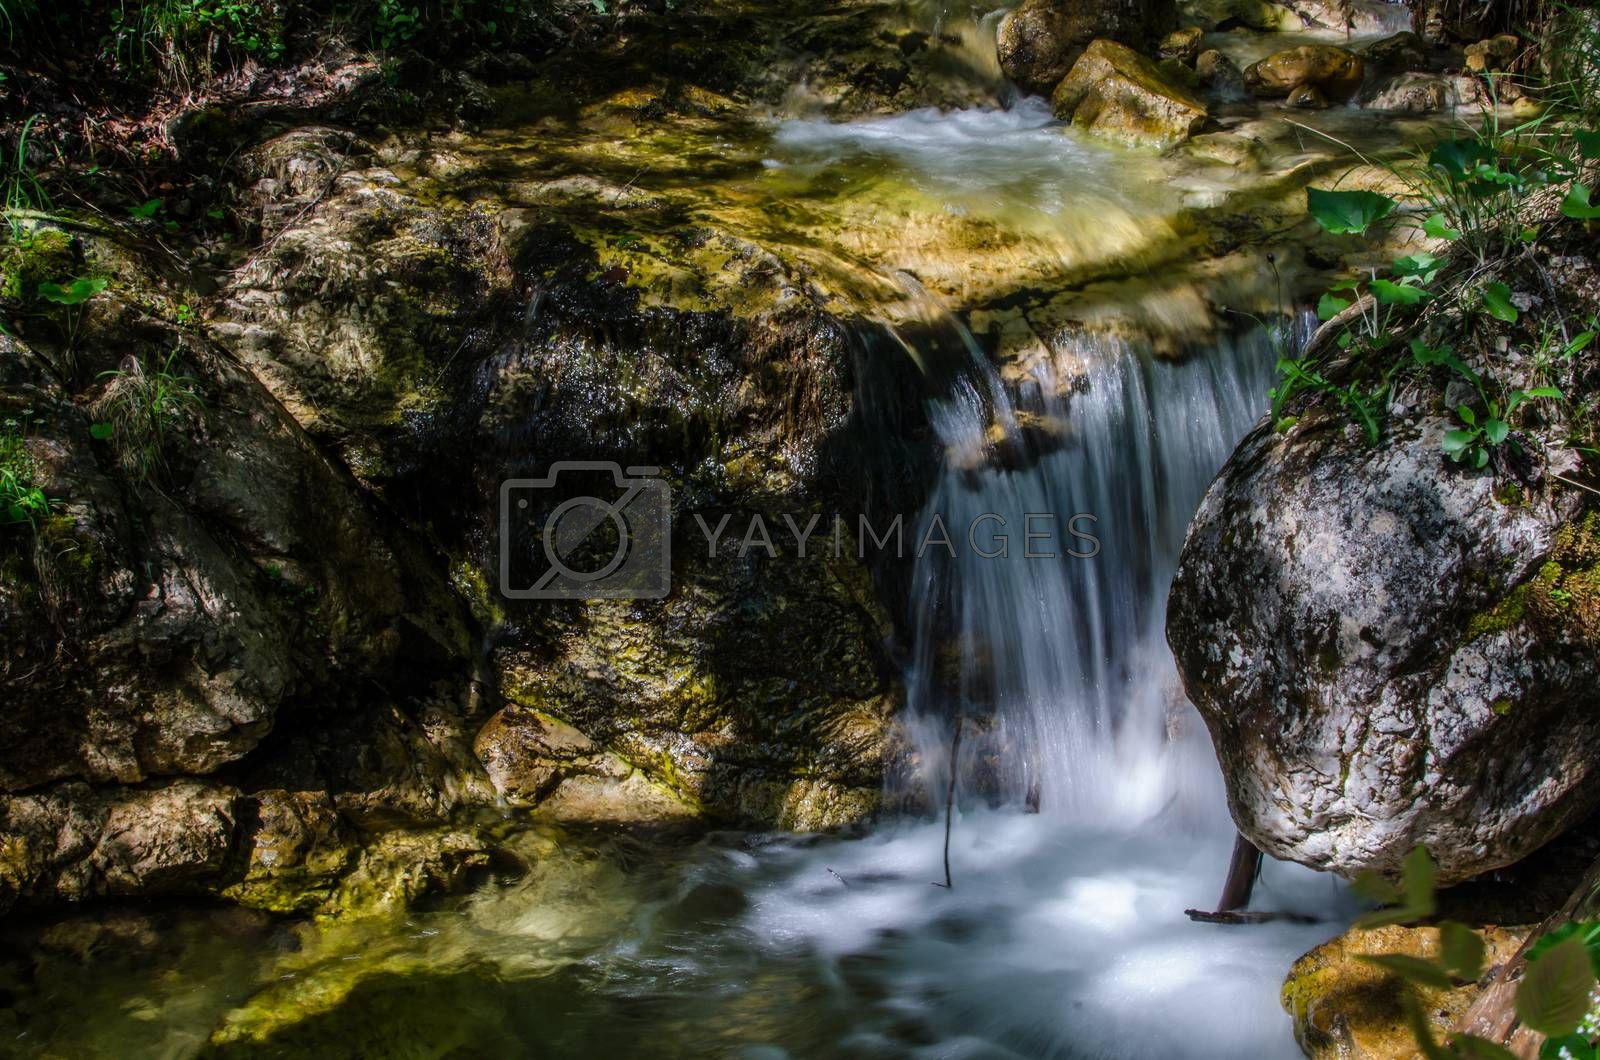 Royalty free image of small stream with shadow by thomaseder